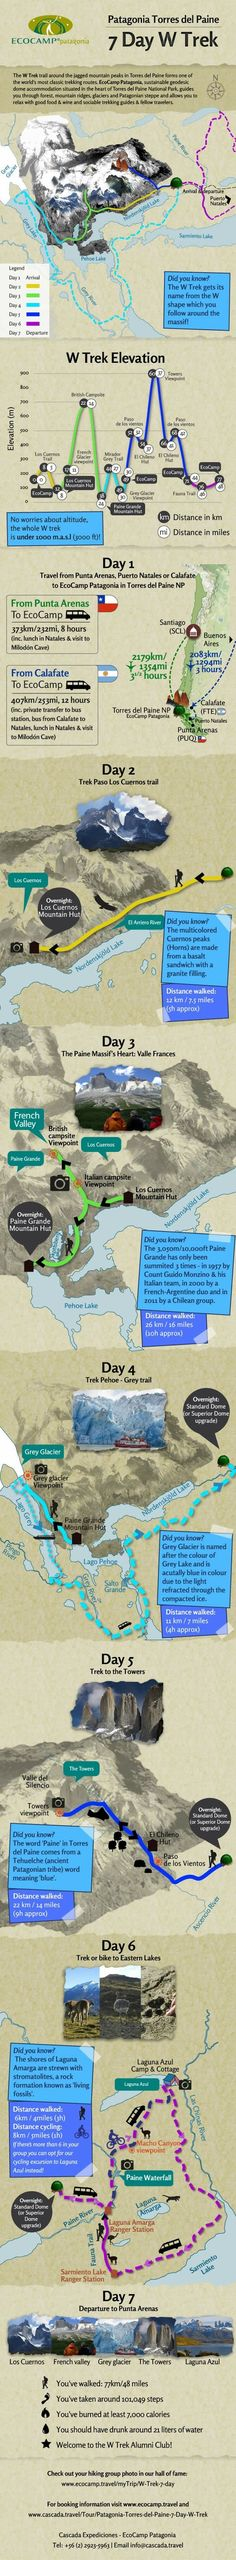 Patagonia Torres del Paine 7 Day W Trek Infographic. #Chile